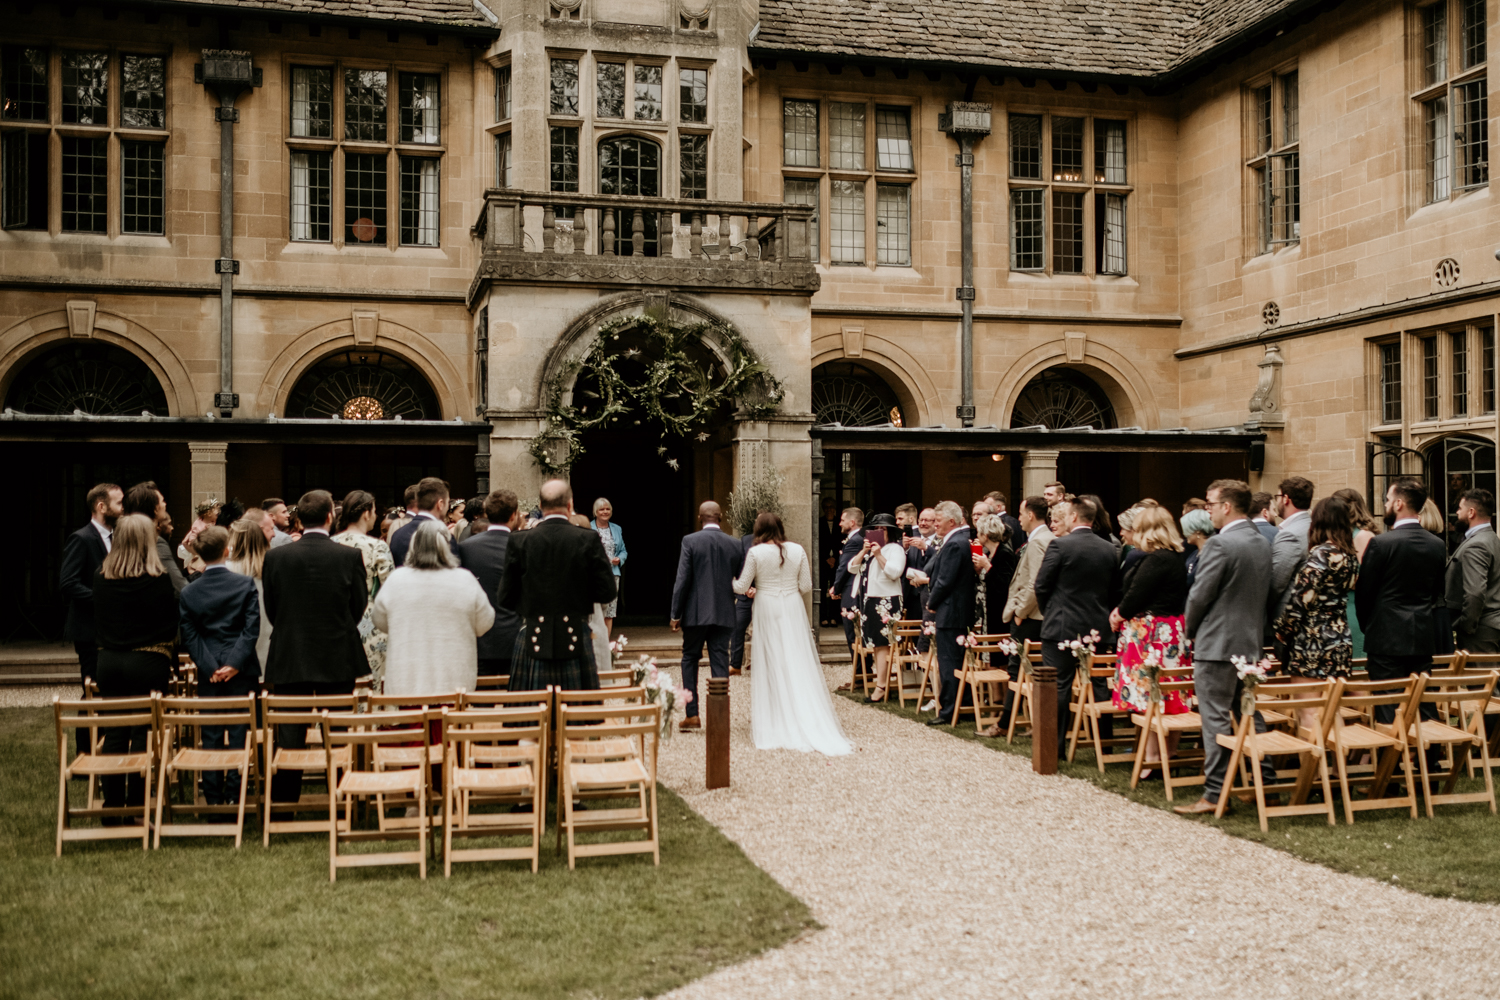 outdoor wedding ceremony at Coombe Lodge Blagdon wedding venue somerset